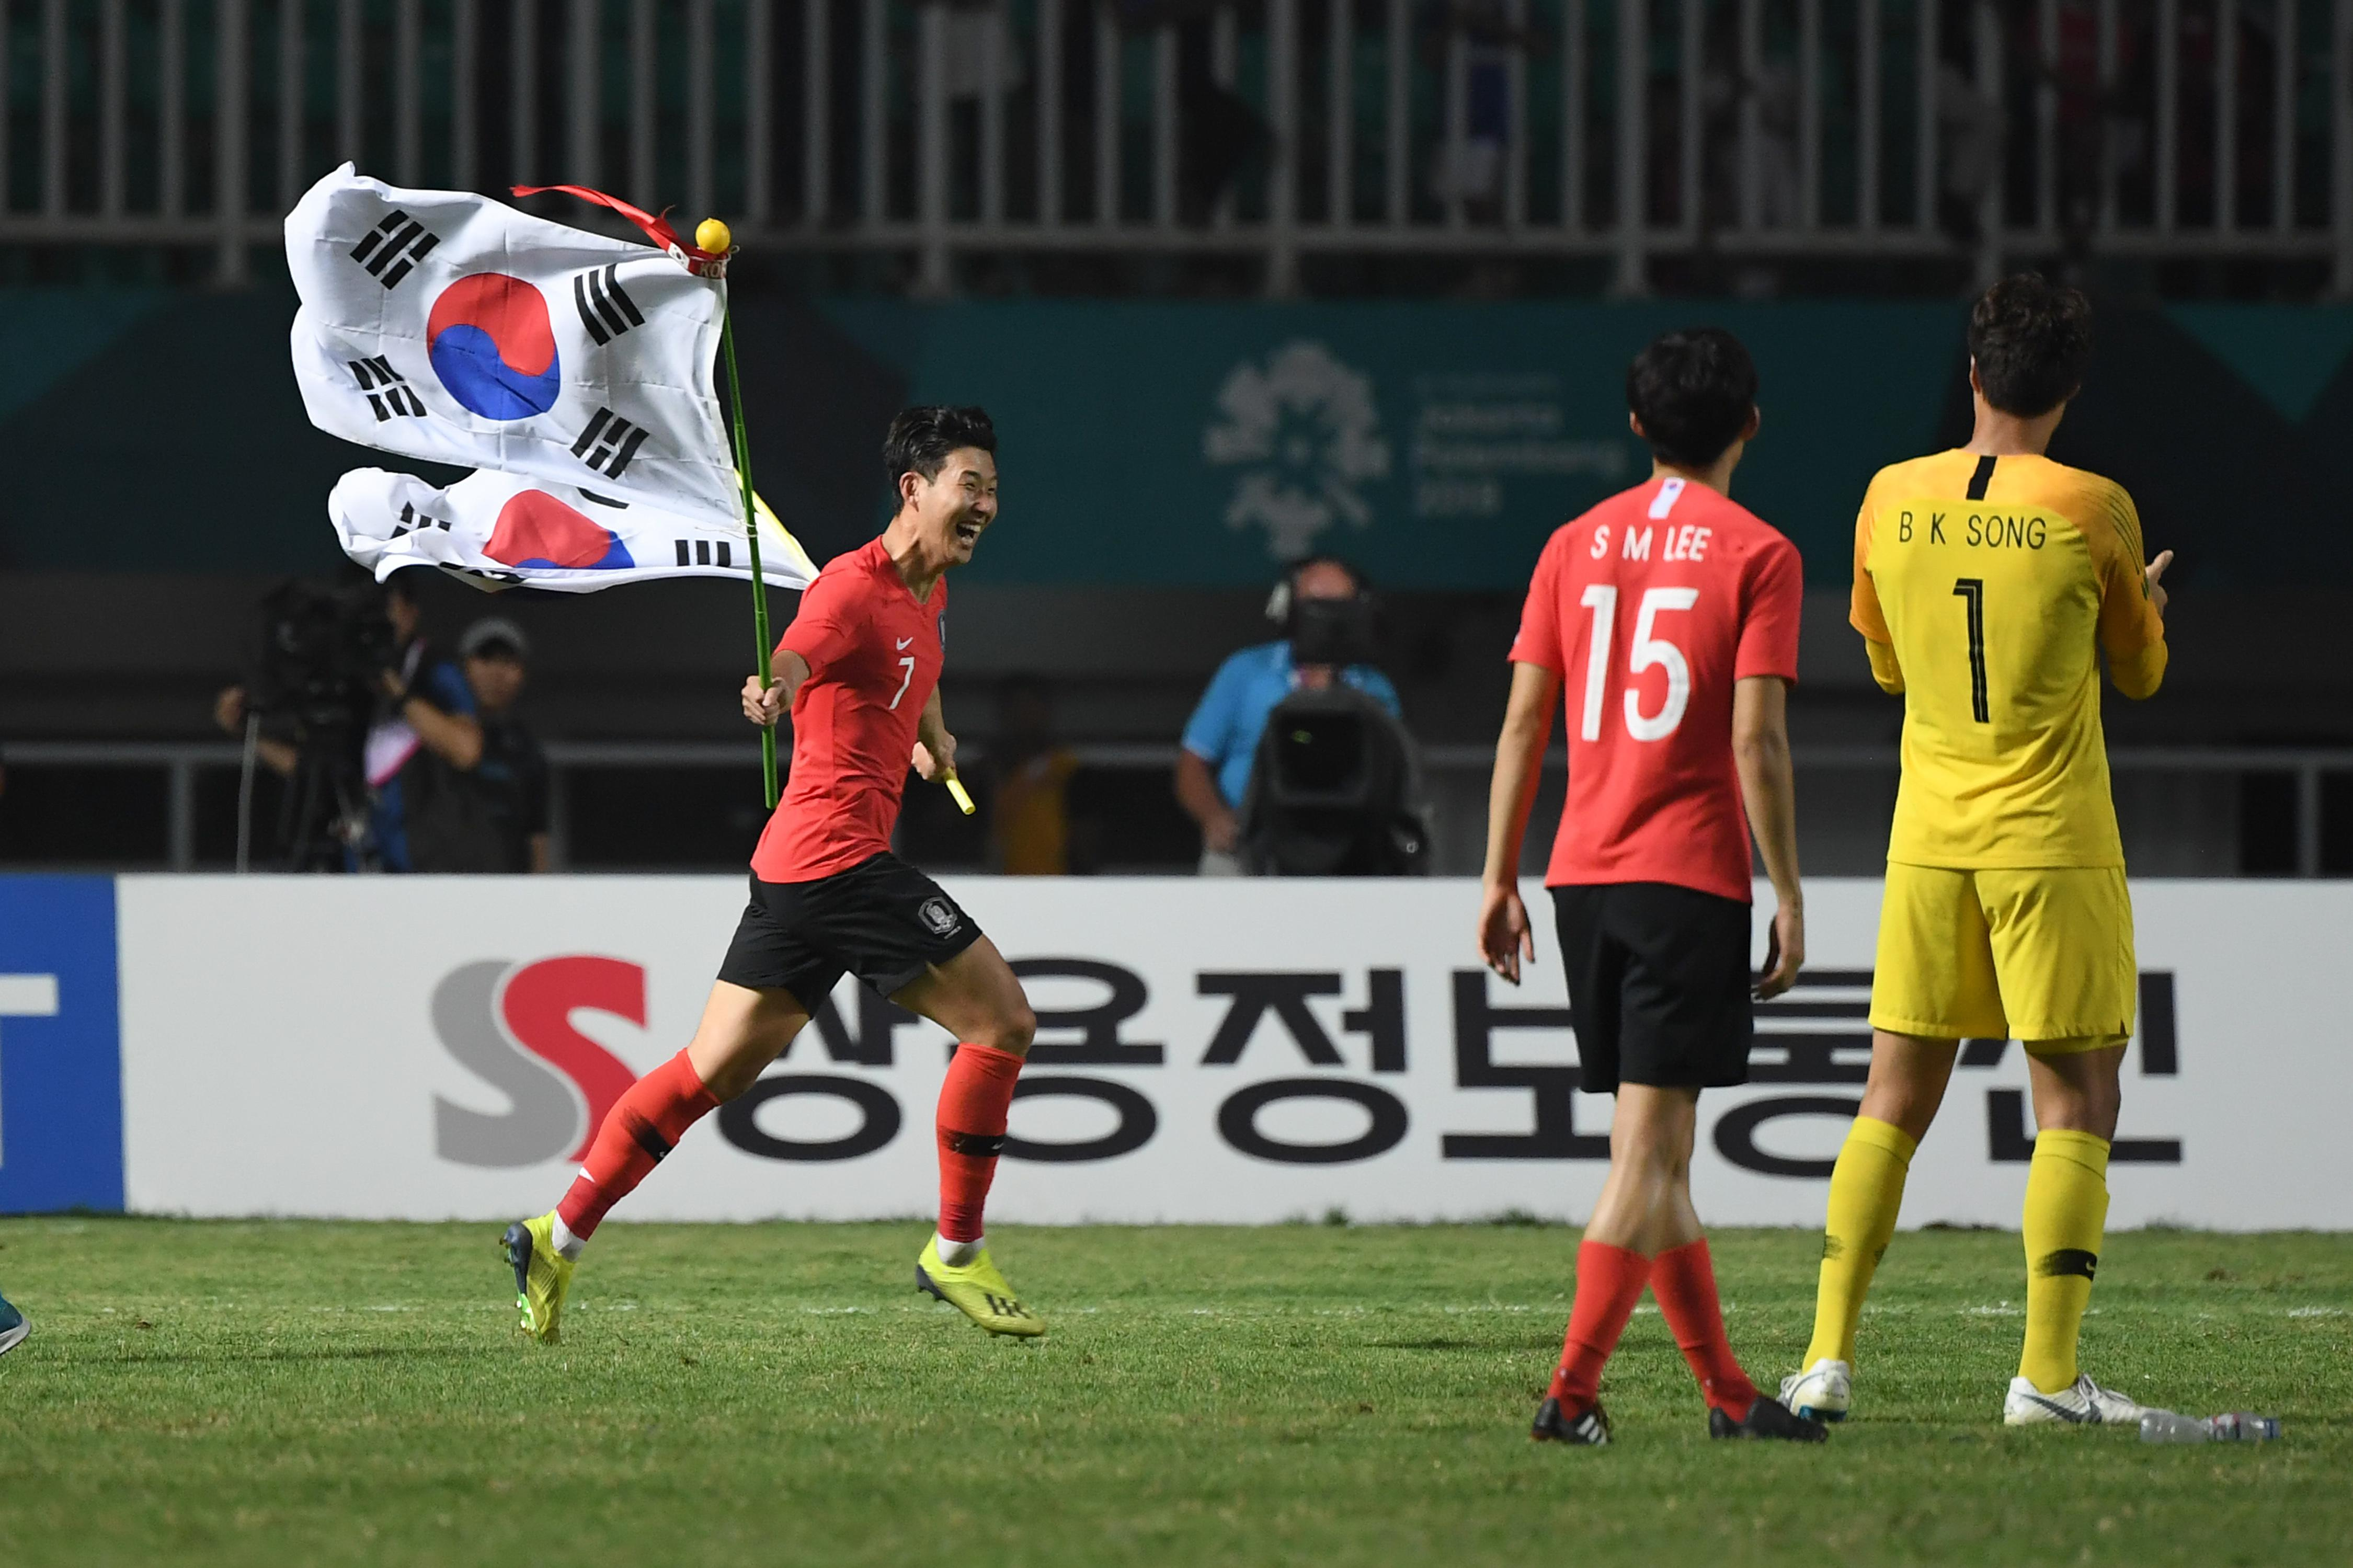 South Korea's Heung Min Son celebrates after winning against Japan in the men's gold medal football match at the 2018 Asian Games in Bogor on September 1, 2018. (Photo by Arief Bagus / AFP)        (Photo credit should read ARIEF BAGUS/AFP/Getty Images)